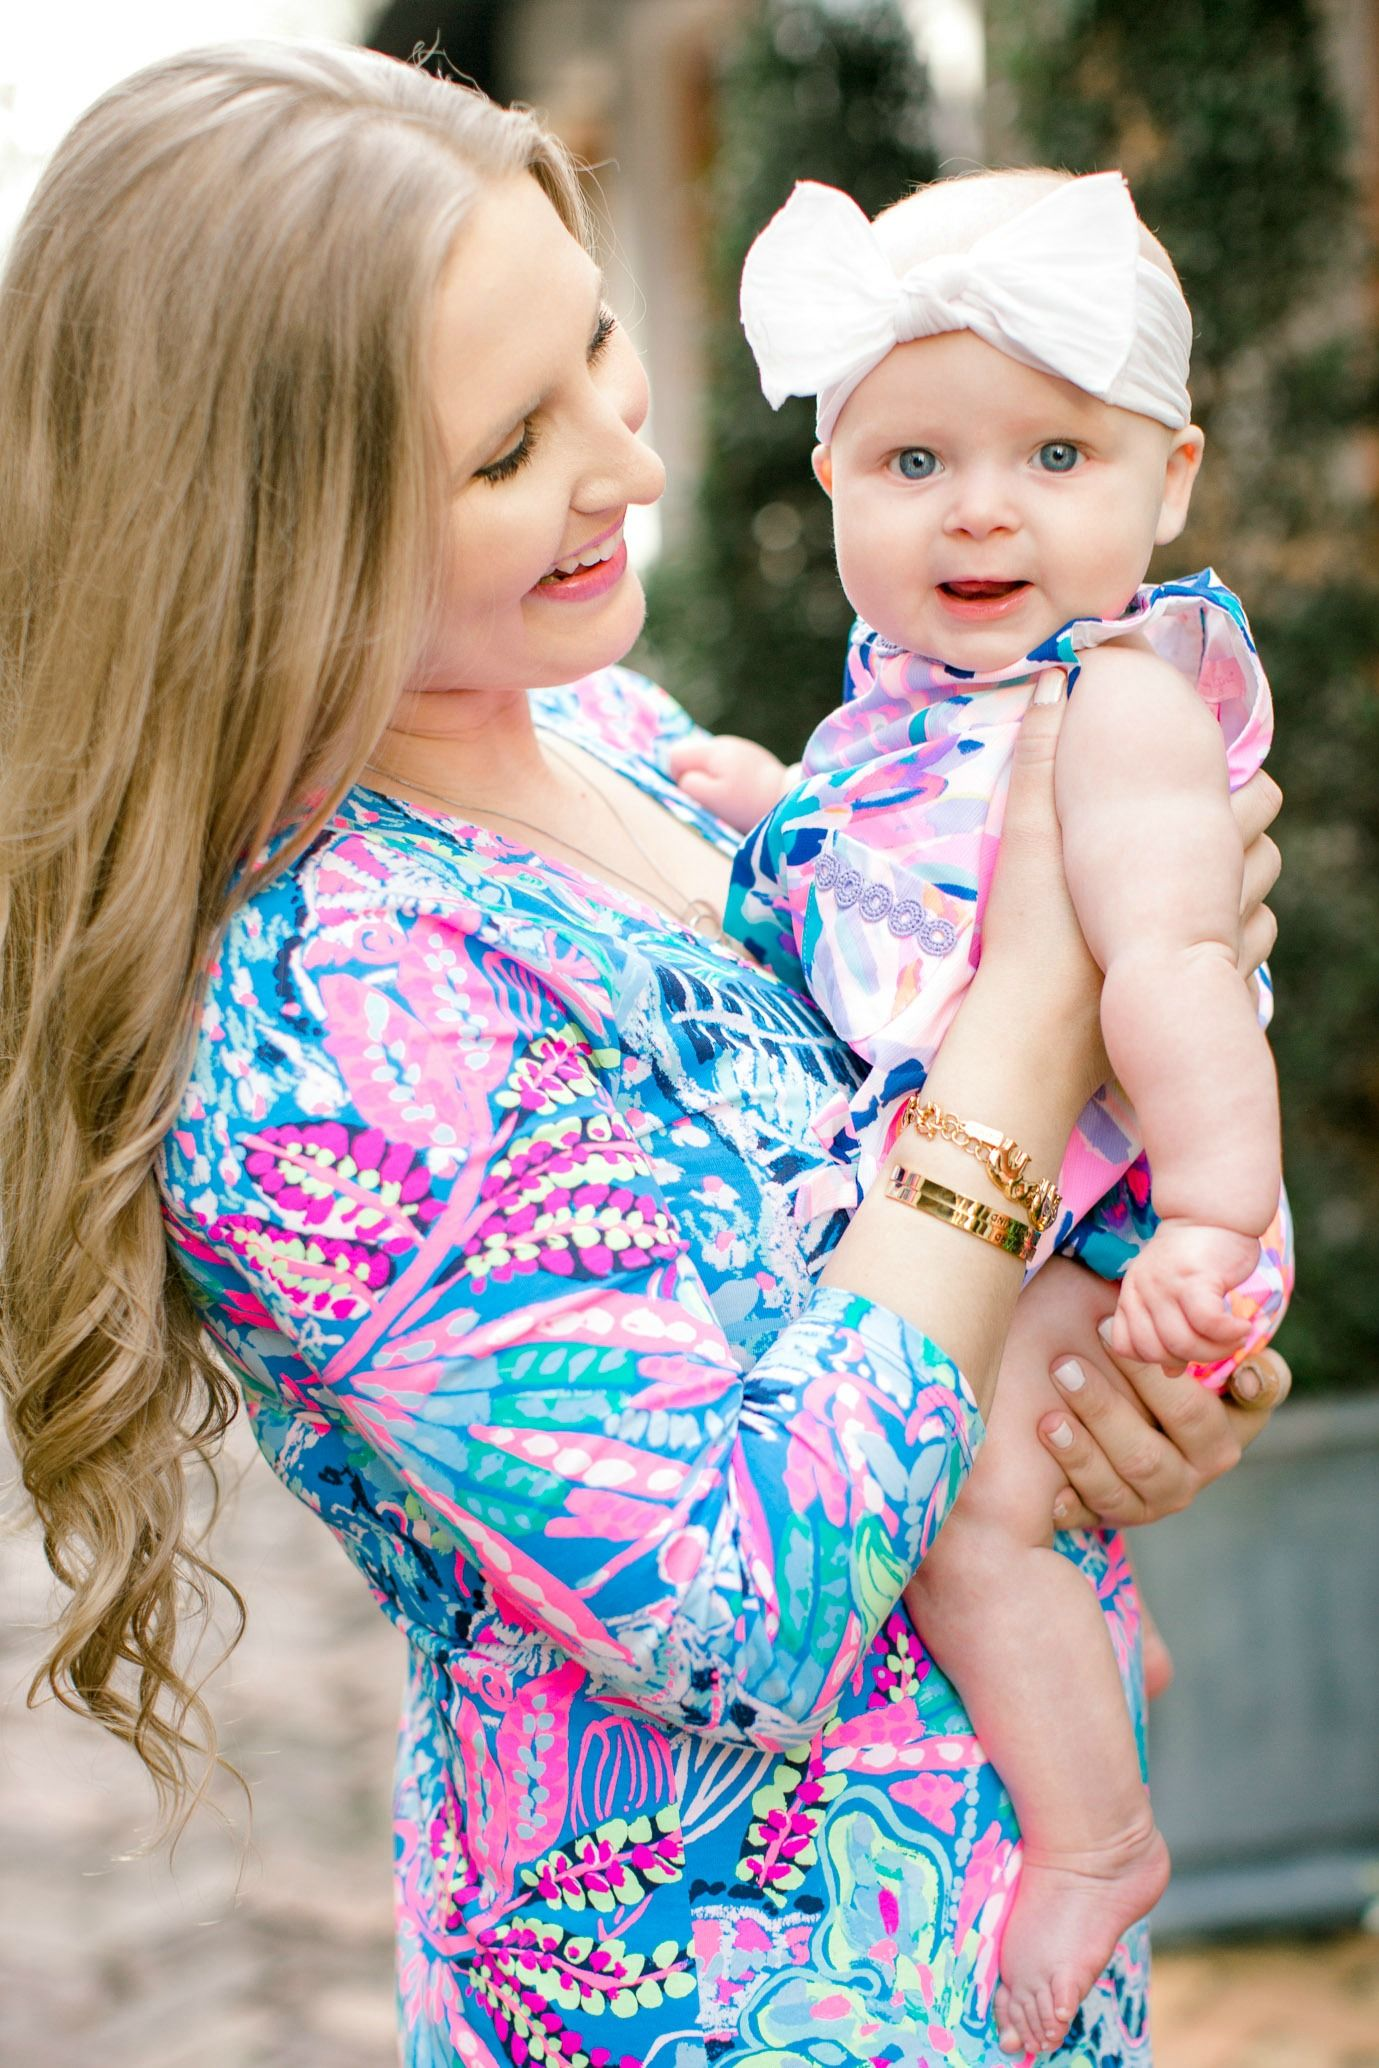 c803f1e3de39 Lilly Pulitzer mommy and me outfit for mama and her baby girl! If you re  looking for cute mommy and me baby outfits